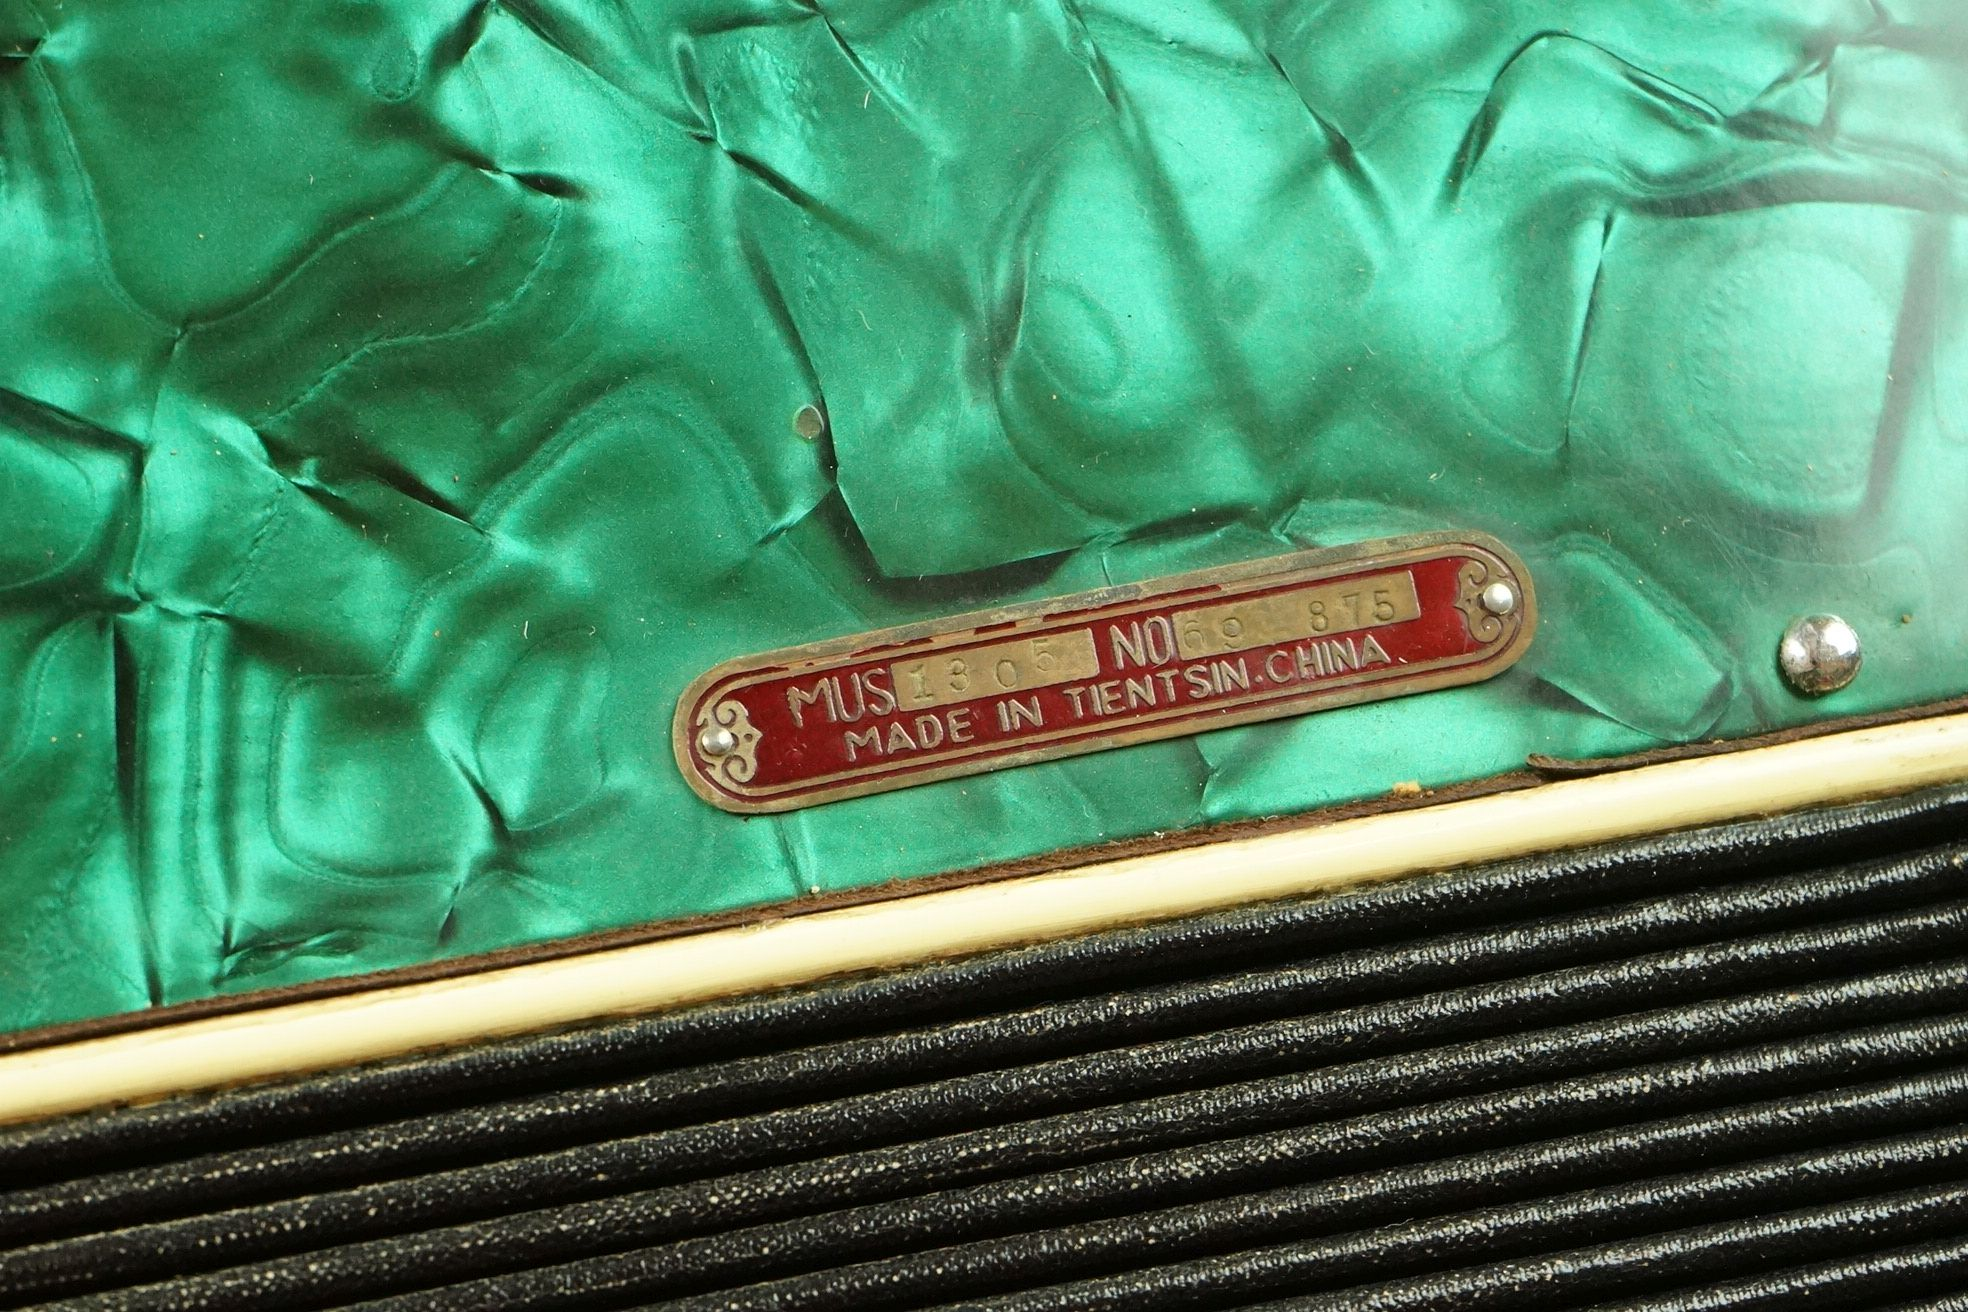 A vintage Parrot Accordion in green in original fitted case. - Image 8 of 10